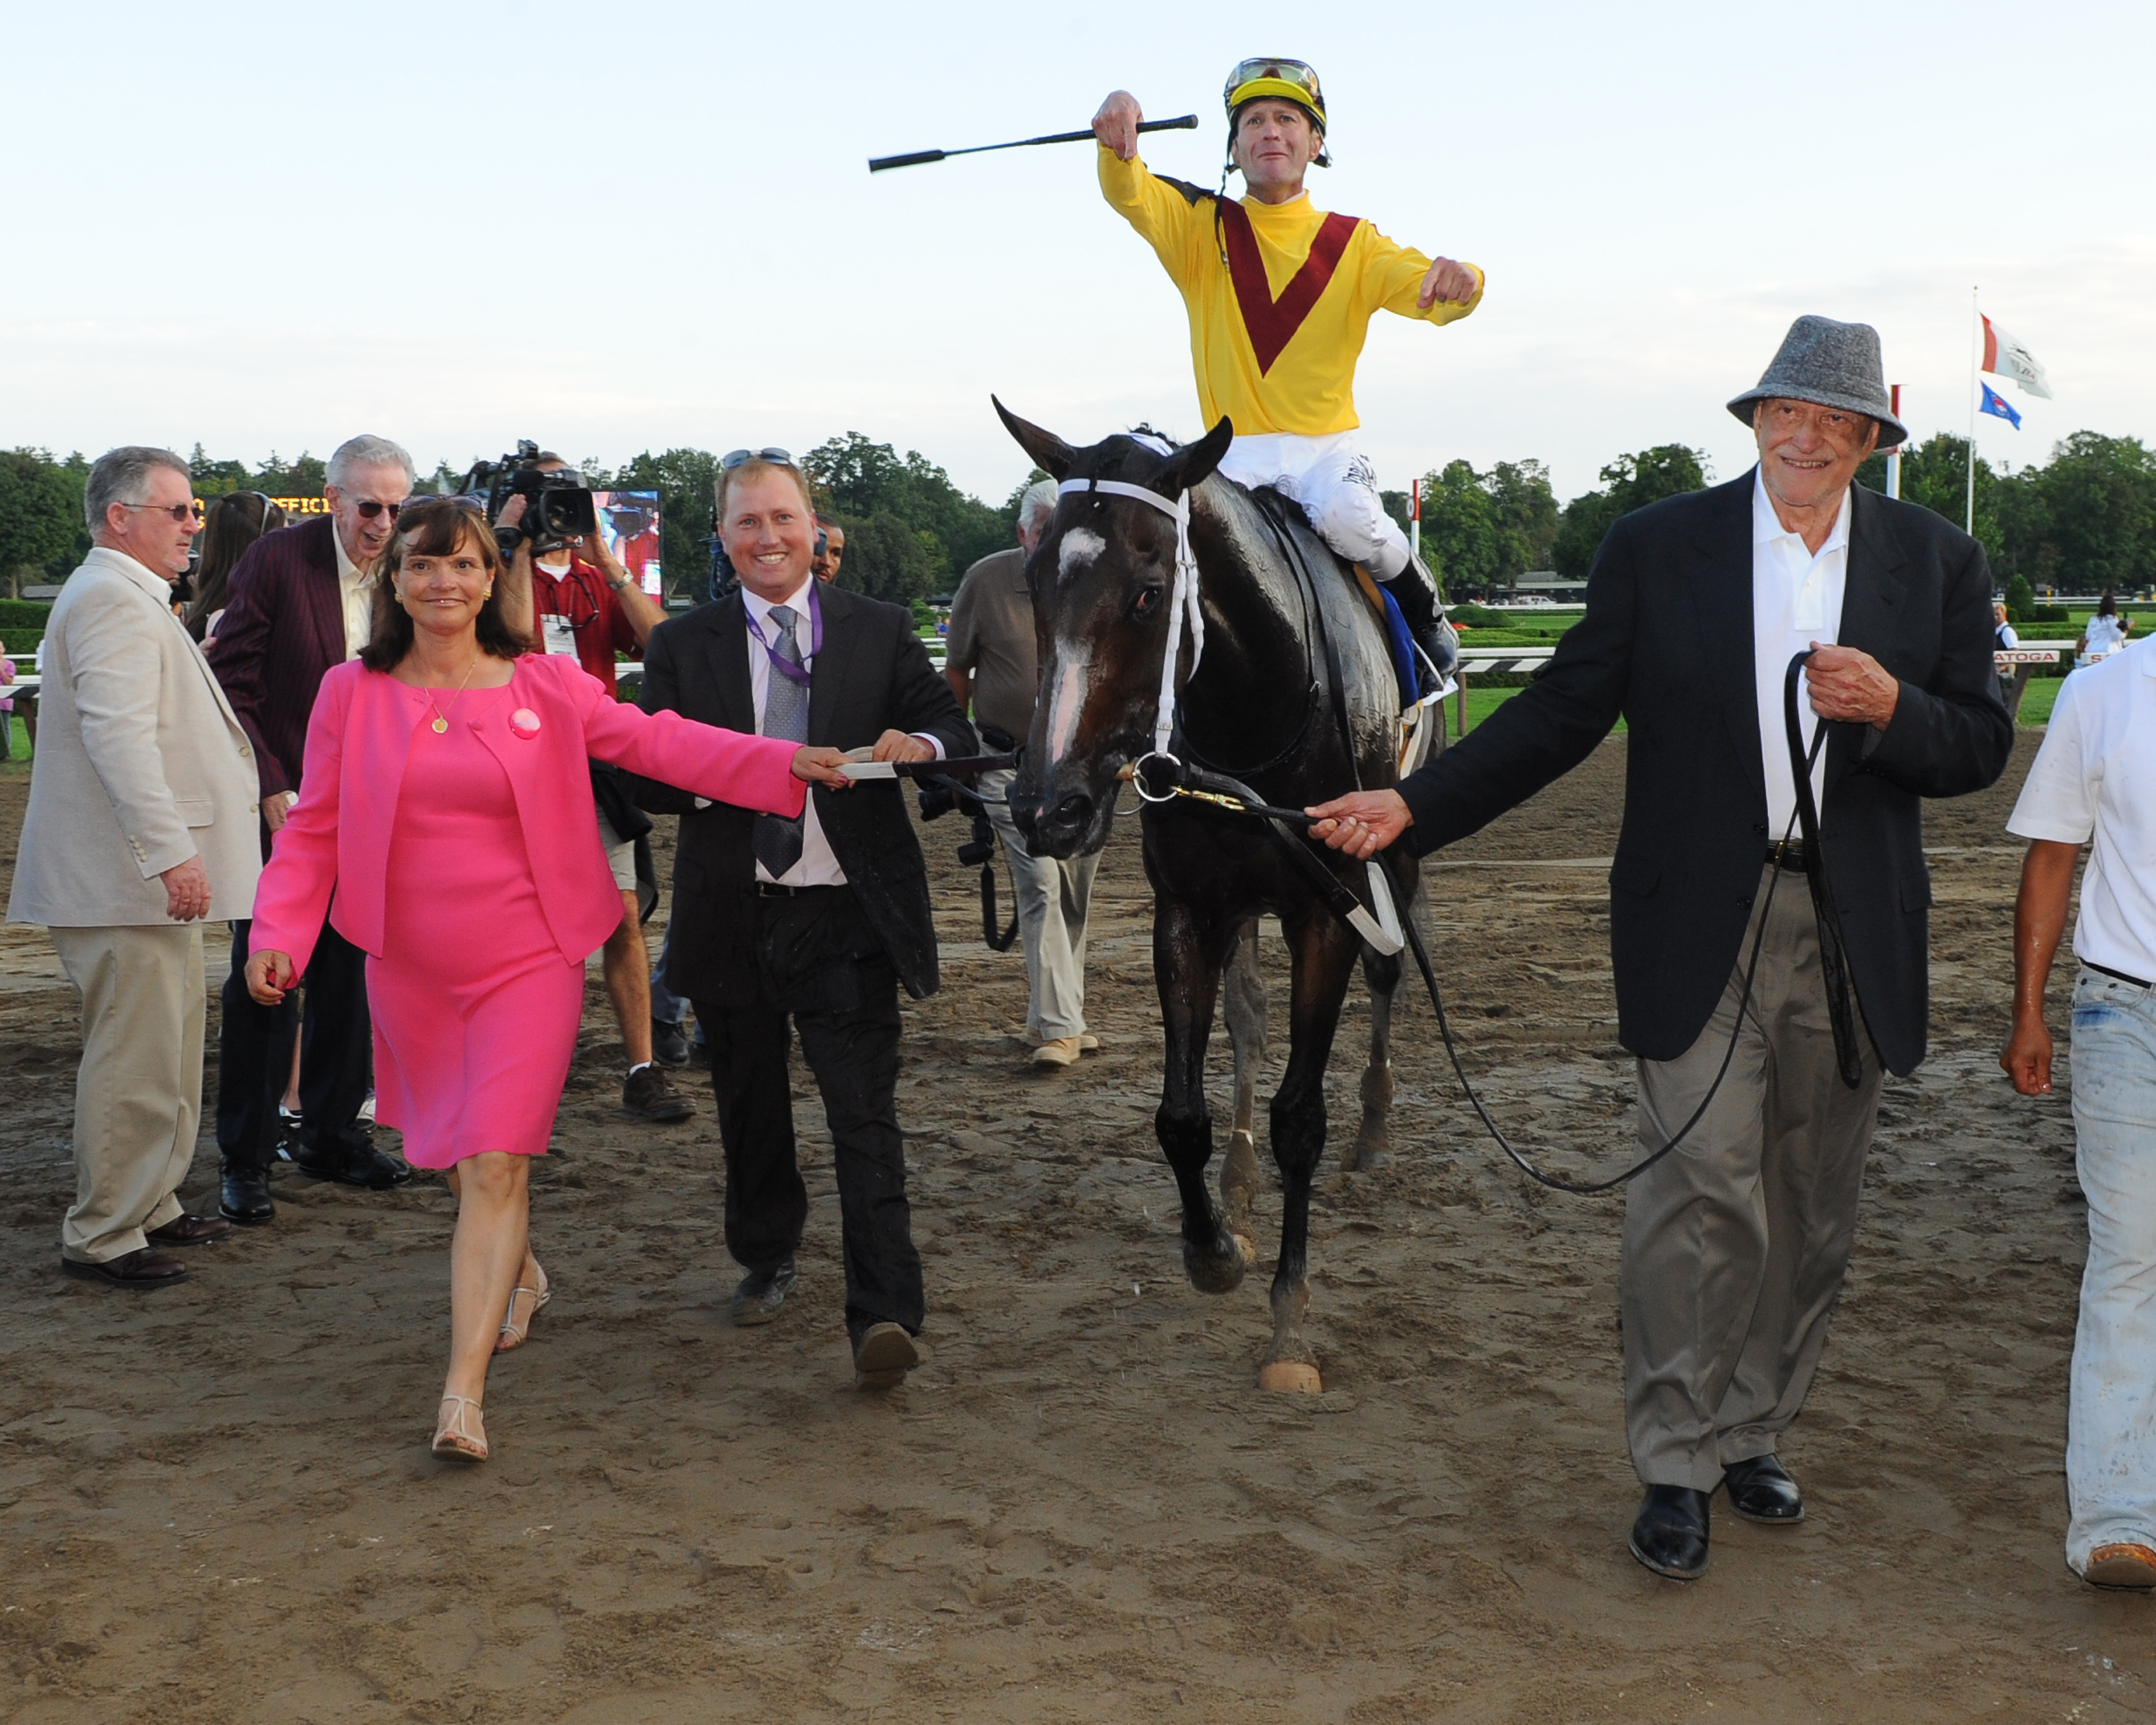 Rachel Alexandra, Calvin Borel up, is led to the winner's circle after winning the 2009 Woodward at Saratoga Race Course (NYRA)